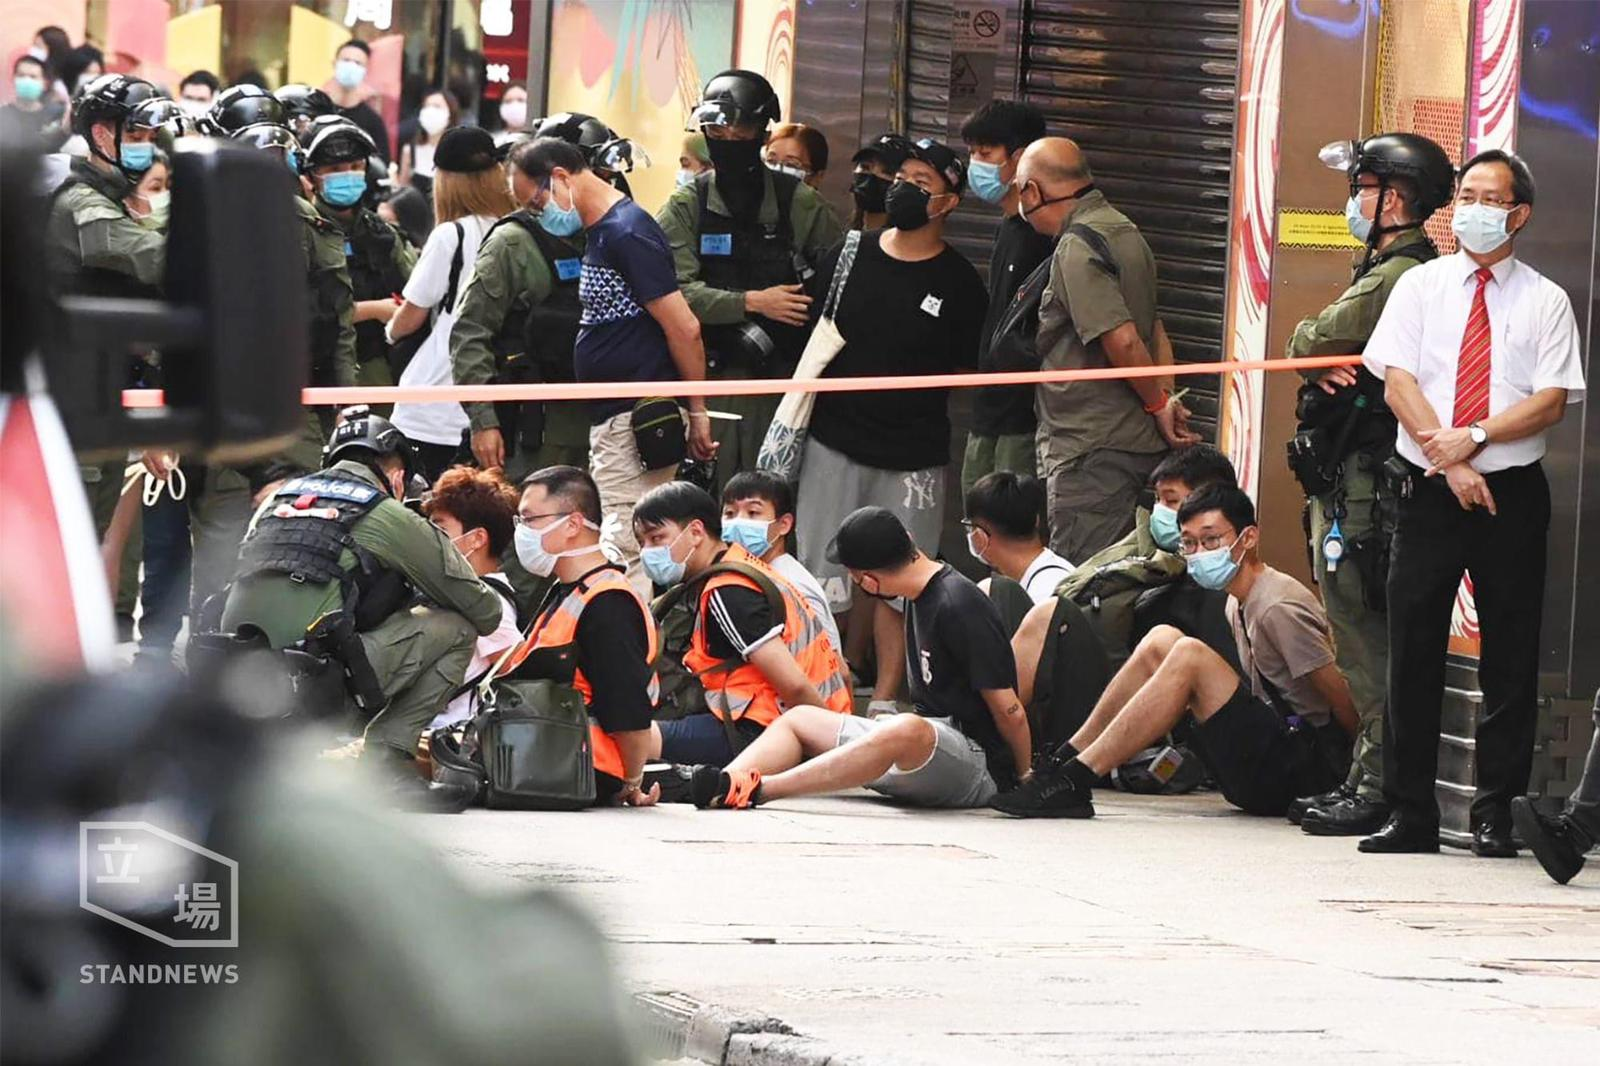 Police fire Pepper Balls on Hong Kong Pro-Democracy Protesters.